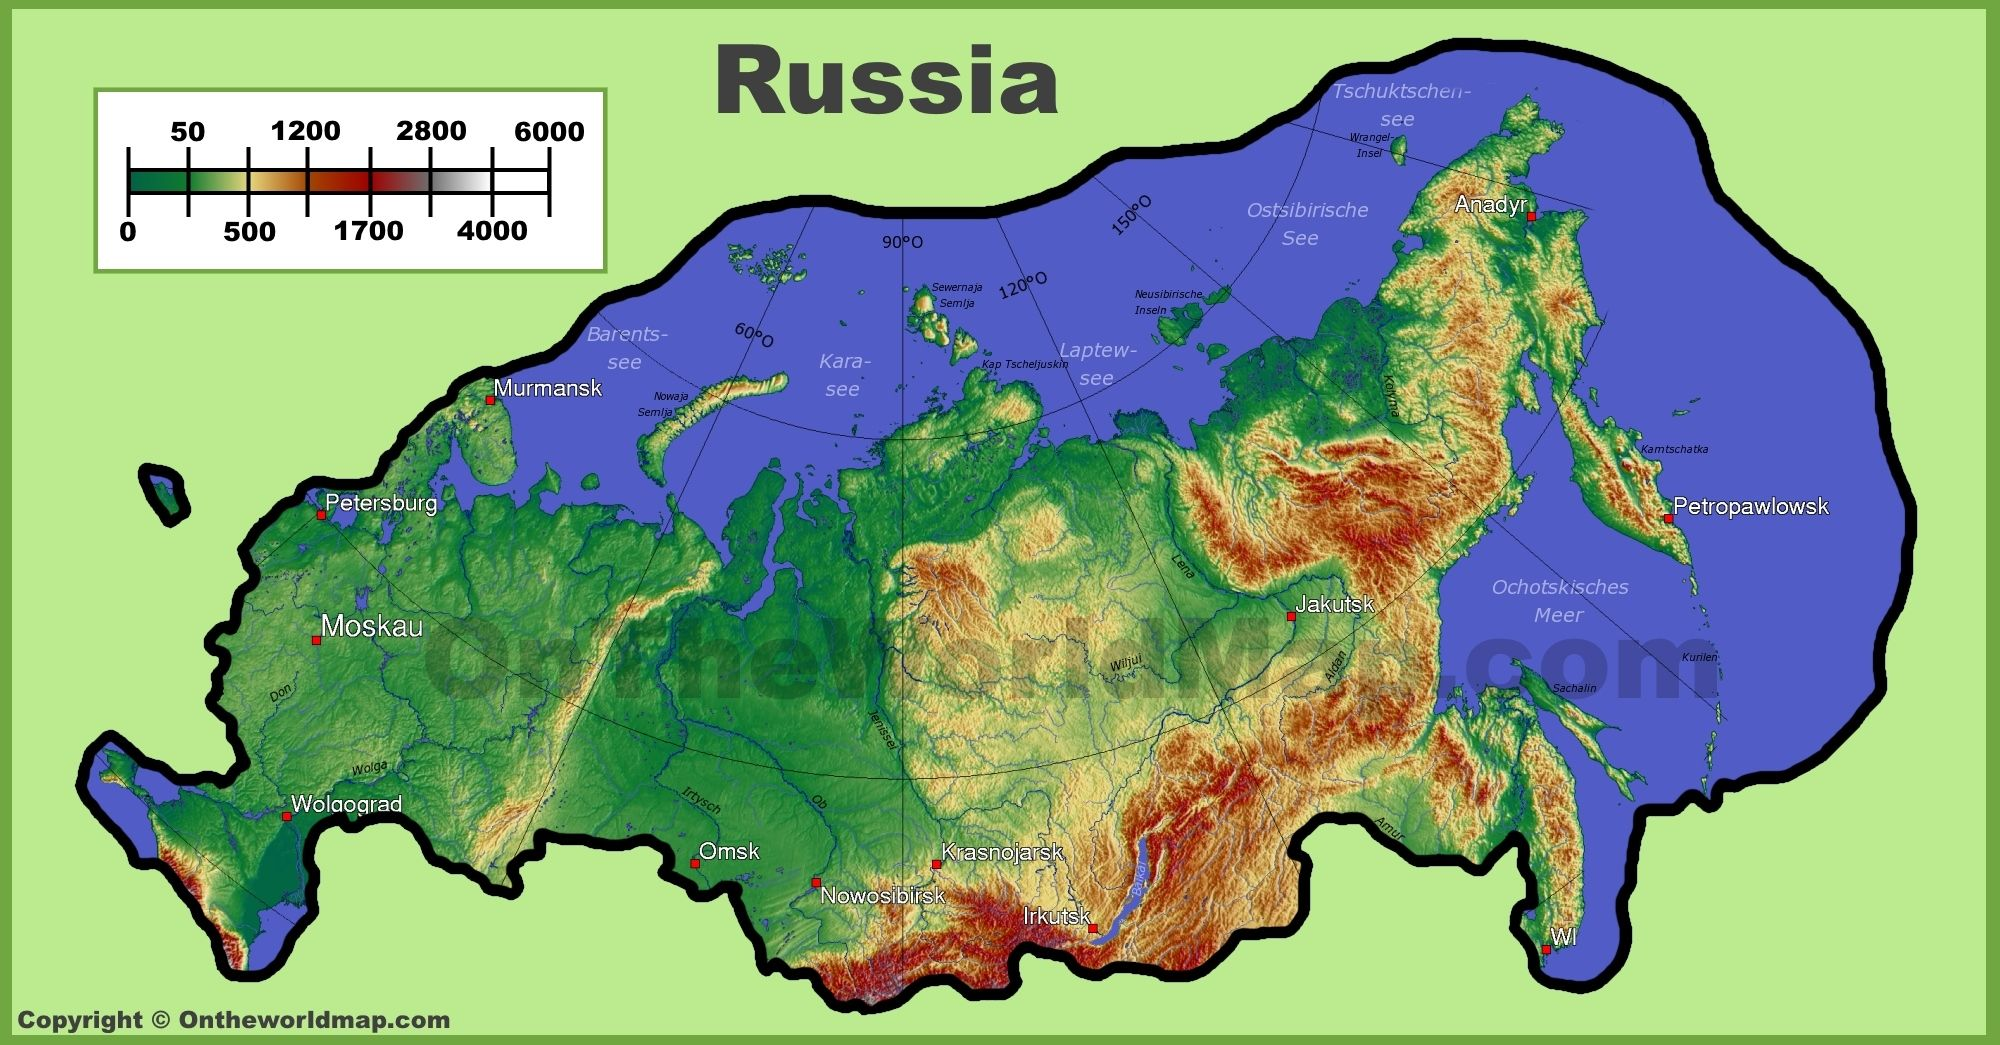 Russia Physical Map Geography Pinterest Russia - Physical world map svg